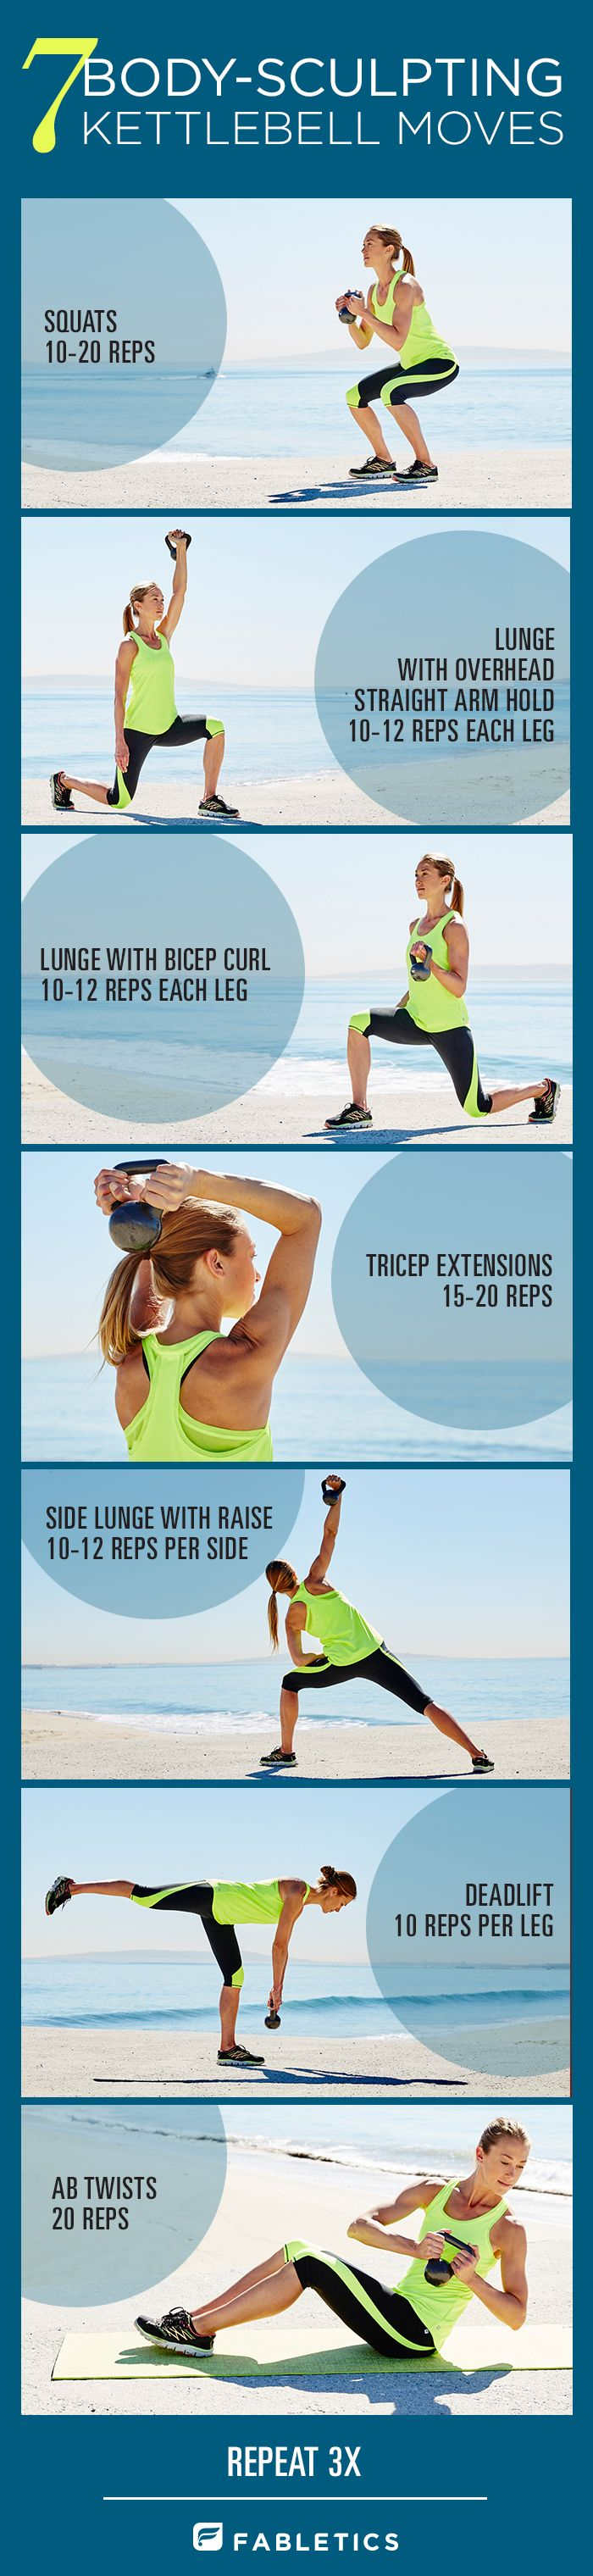 Kettlebell workouts are designed to strengthen and tone your entire body–upper and lower at the same time.  When you work on increasing strength and muscle tone, you'll burn more calories at rest.  Here are some moves to include in your fitness routine. | Fabletics Blog